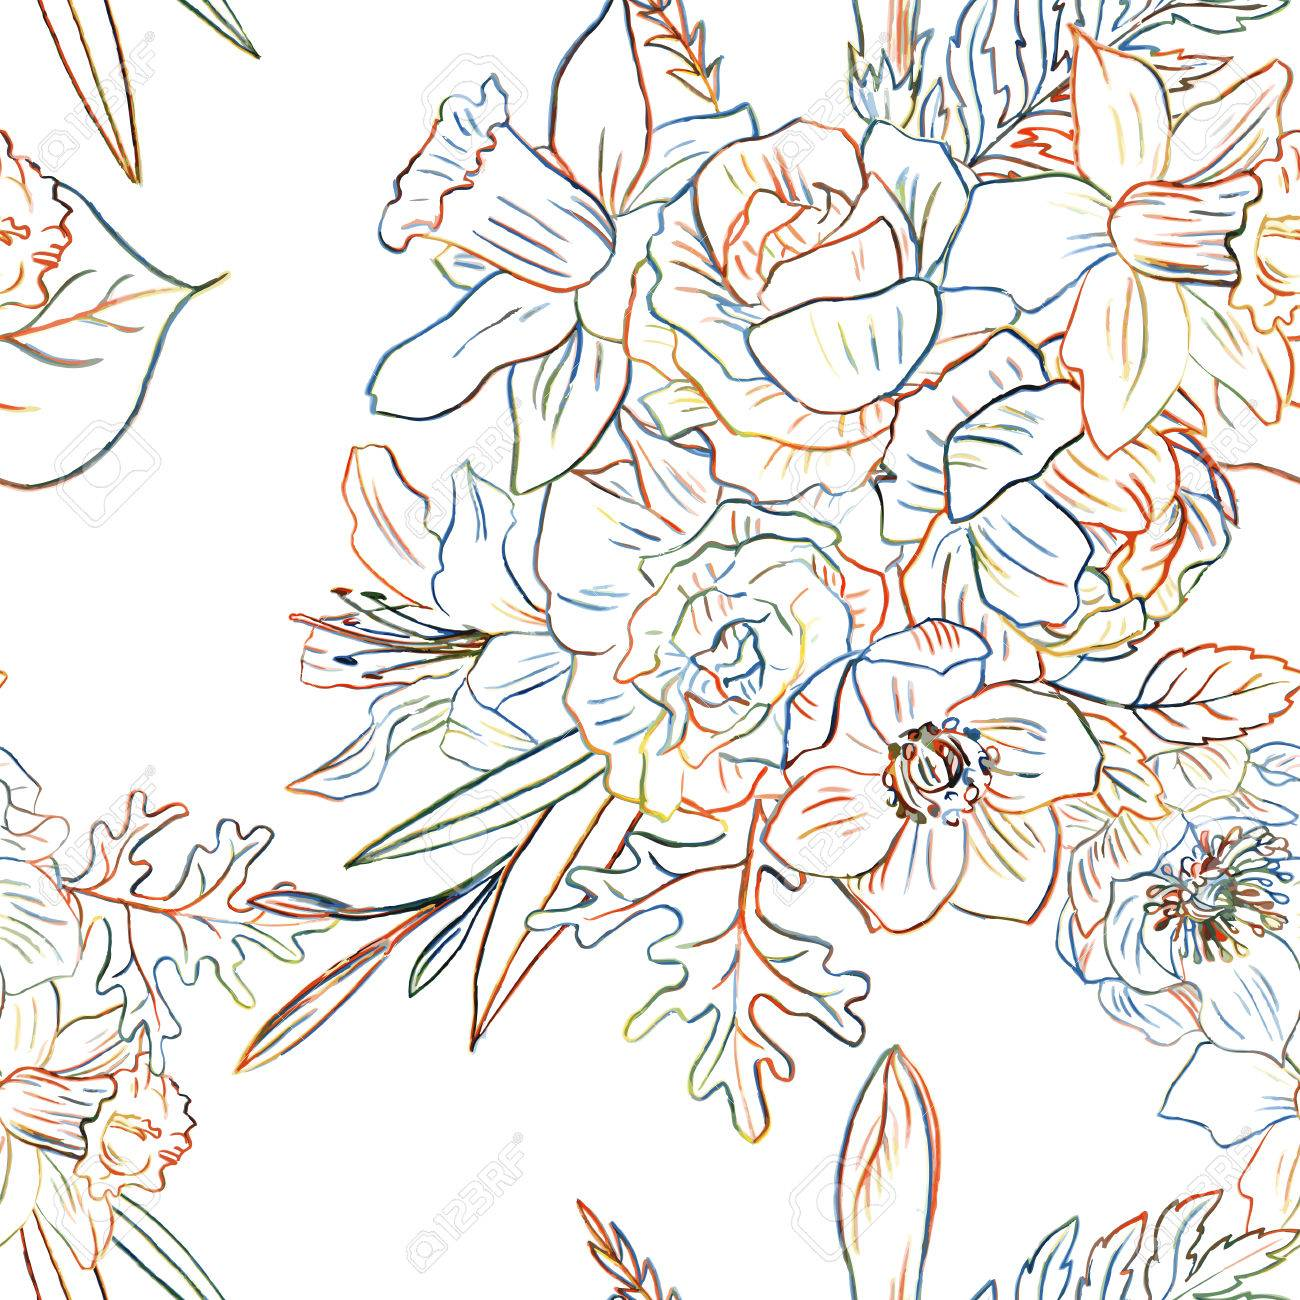 1300x1300 Line Drawing Floral Seamless Pattern With Colorful Doodle Flower